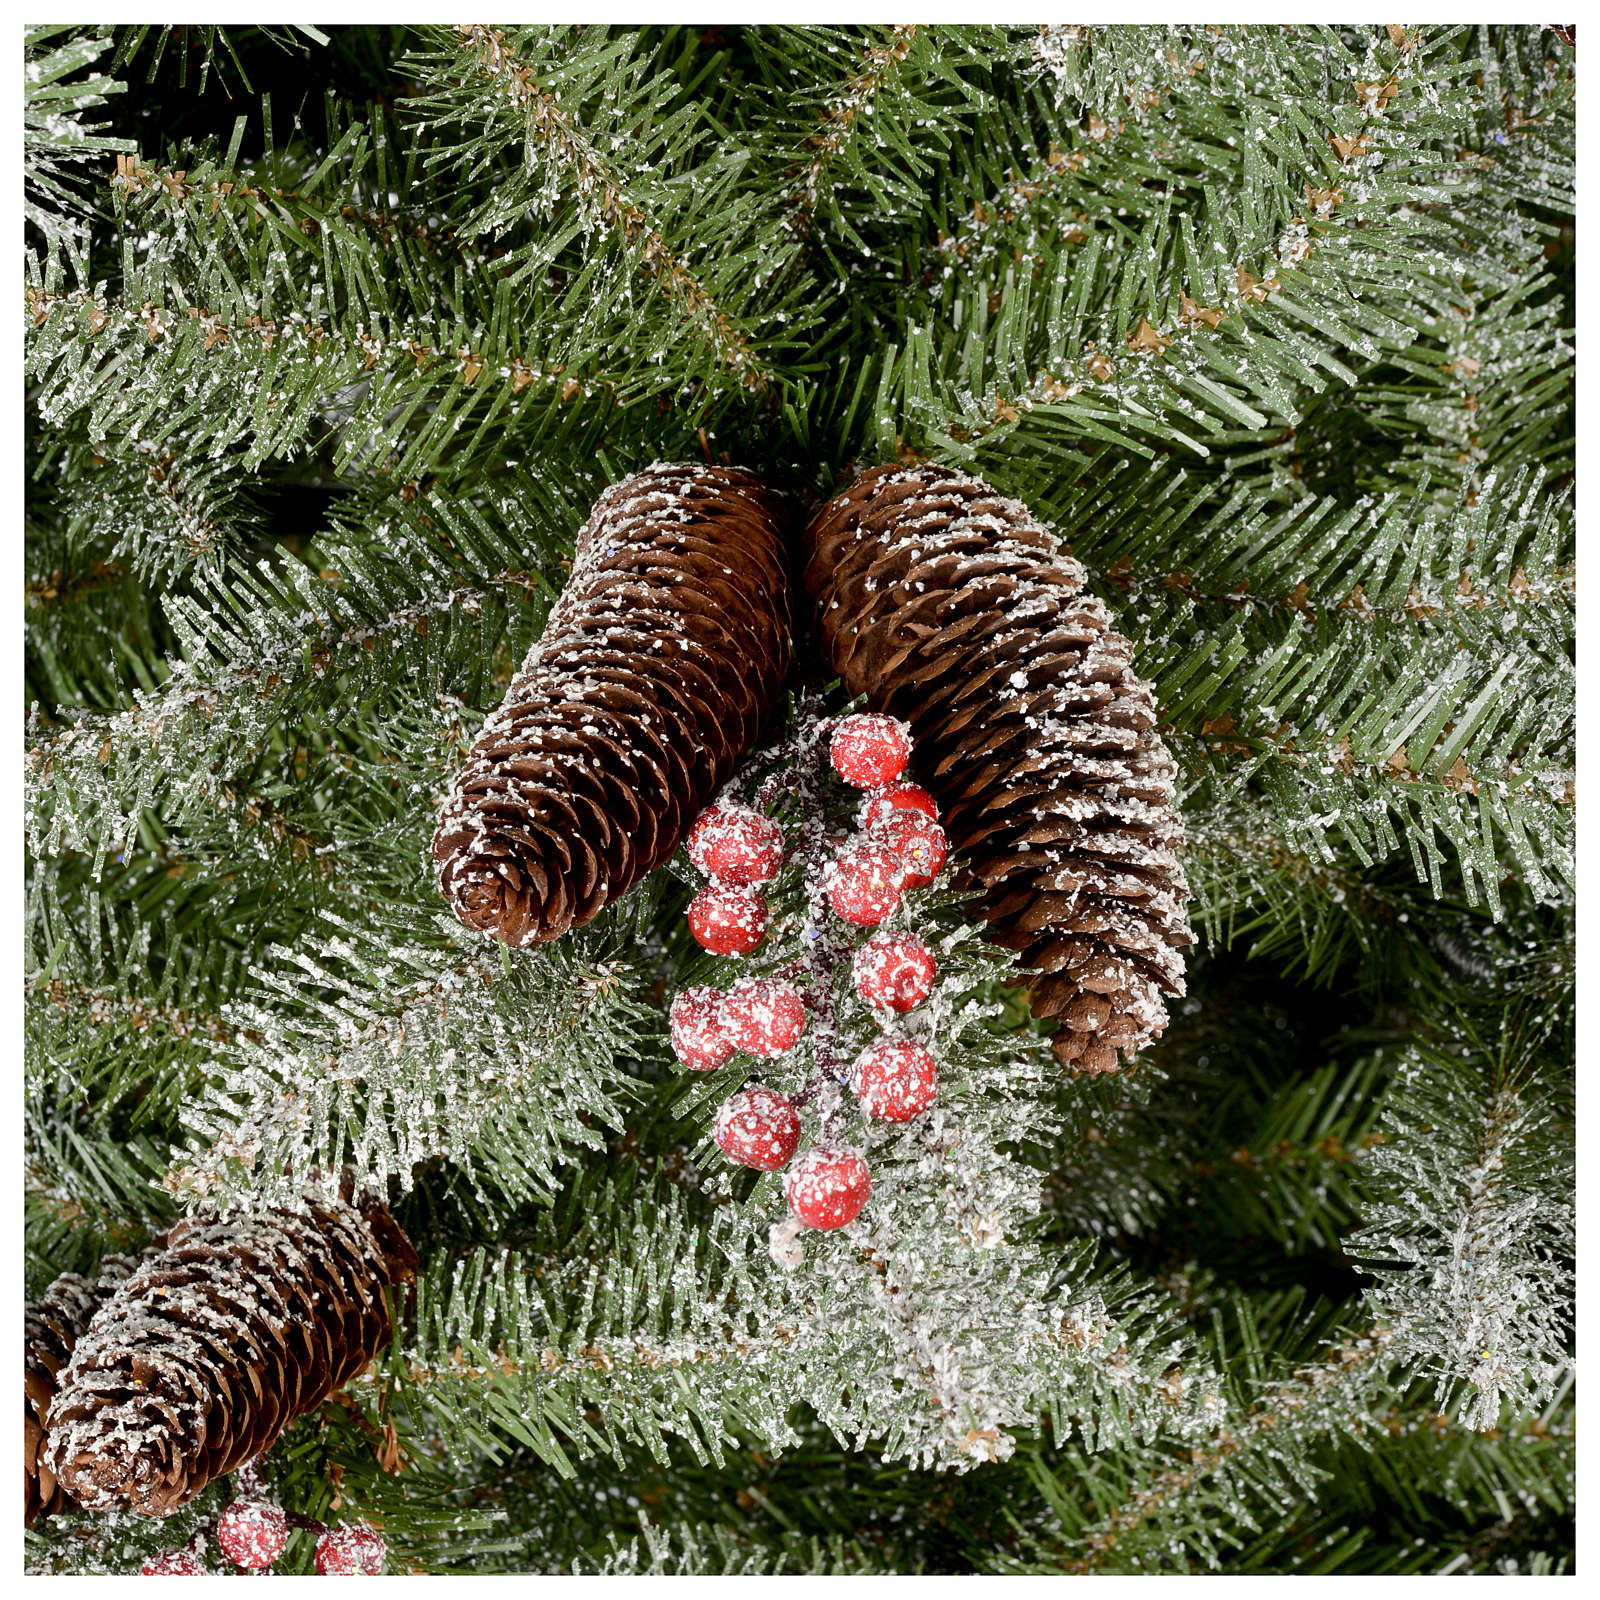 Artificial Christmas Trees With Berries And Pine Cones